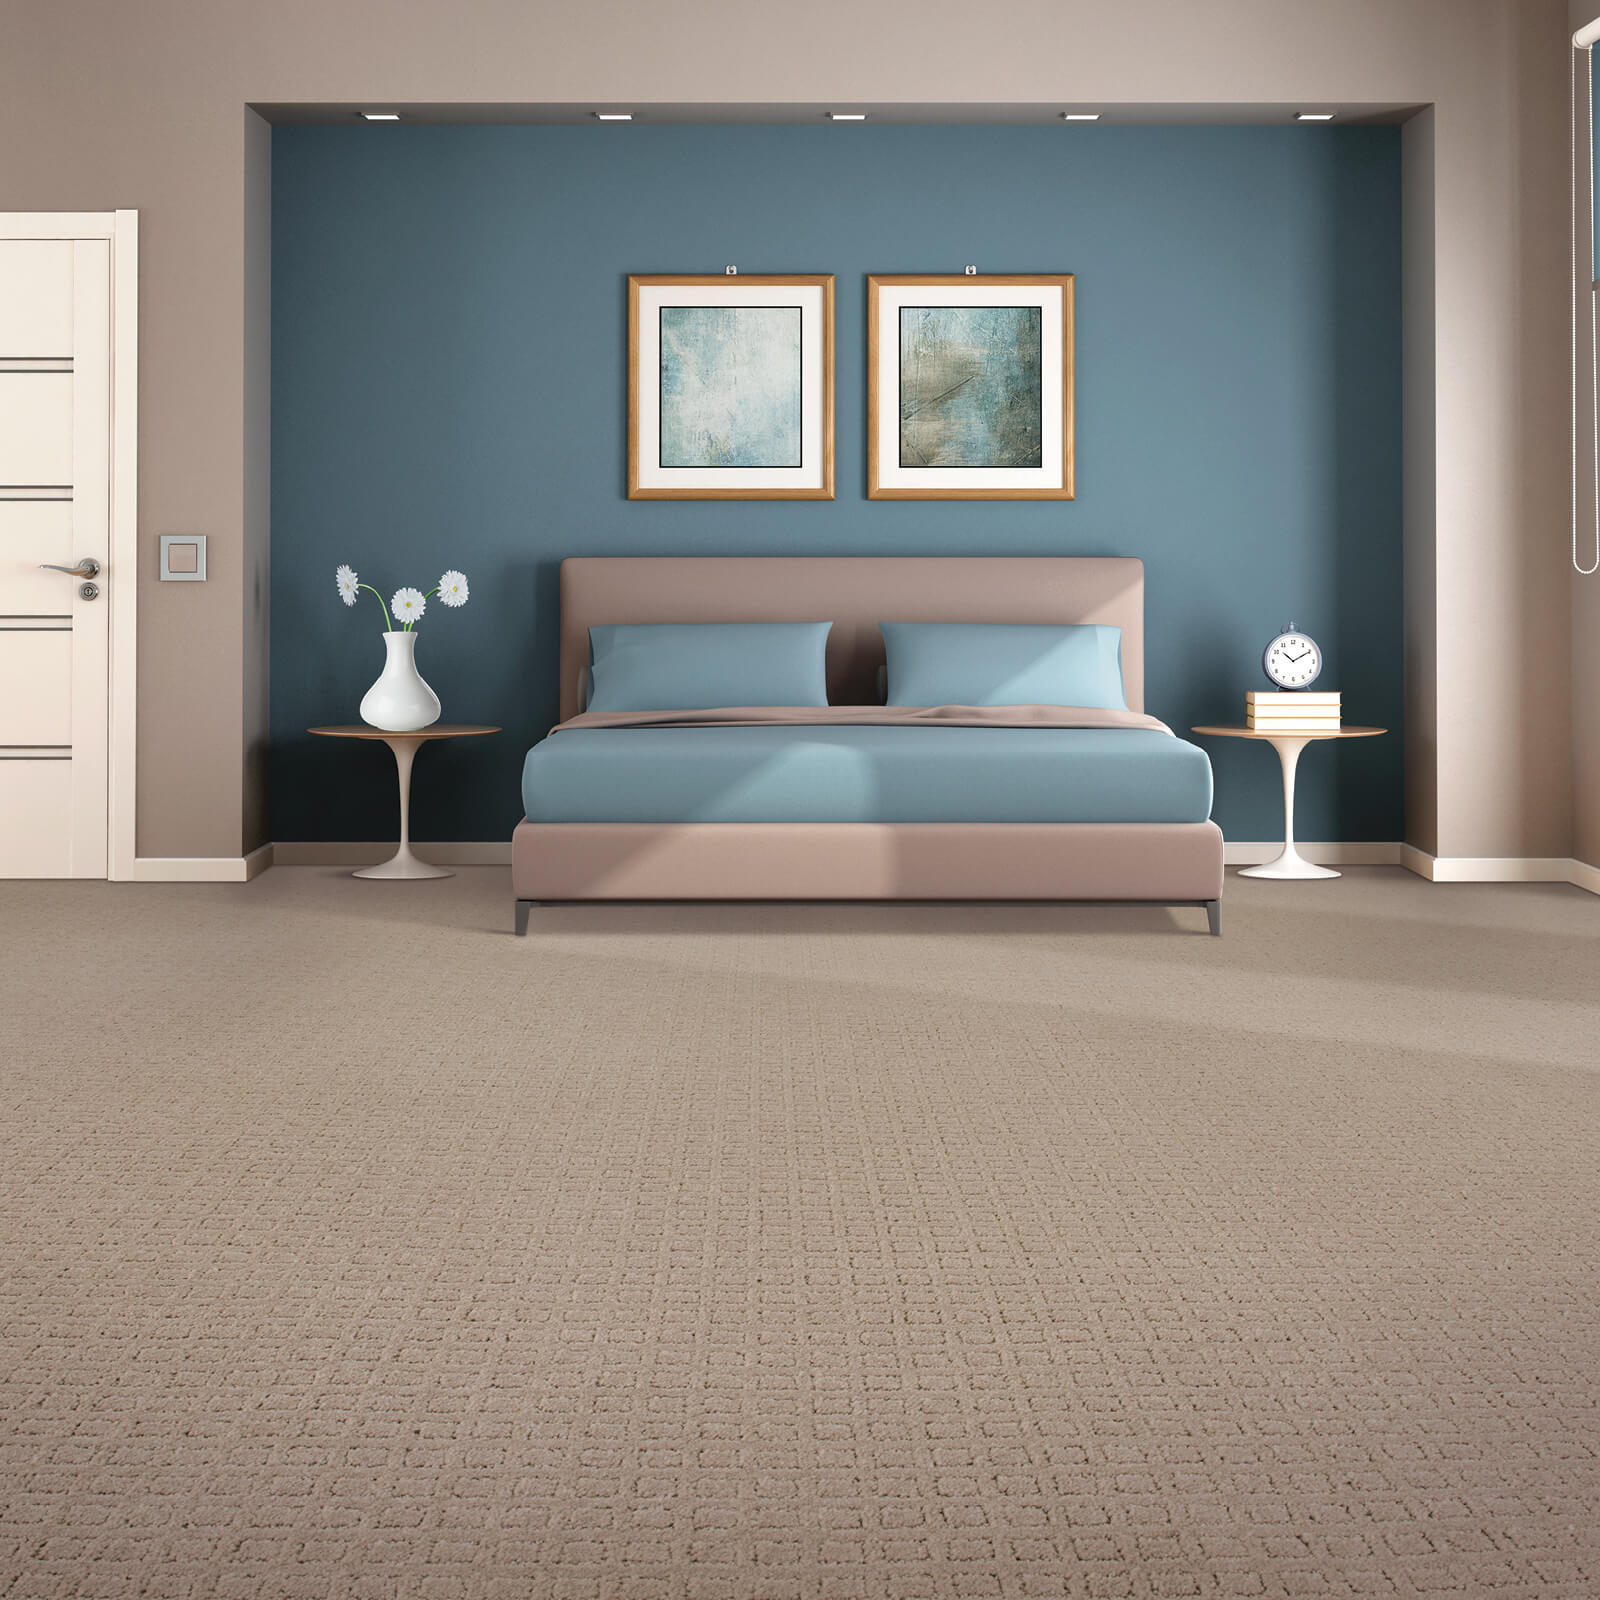 Bedroom Carpet | Wacky's Flooring